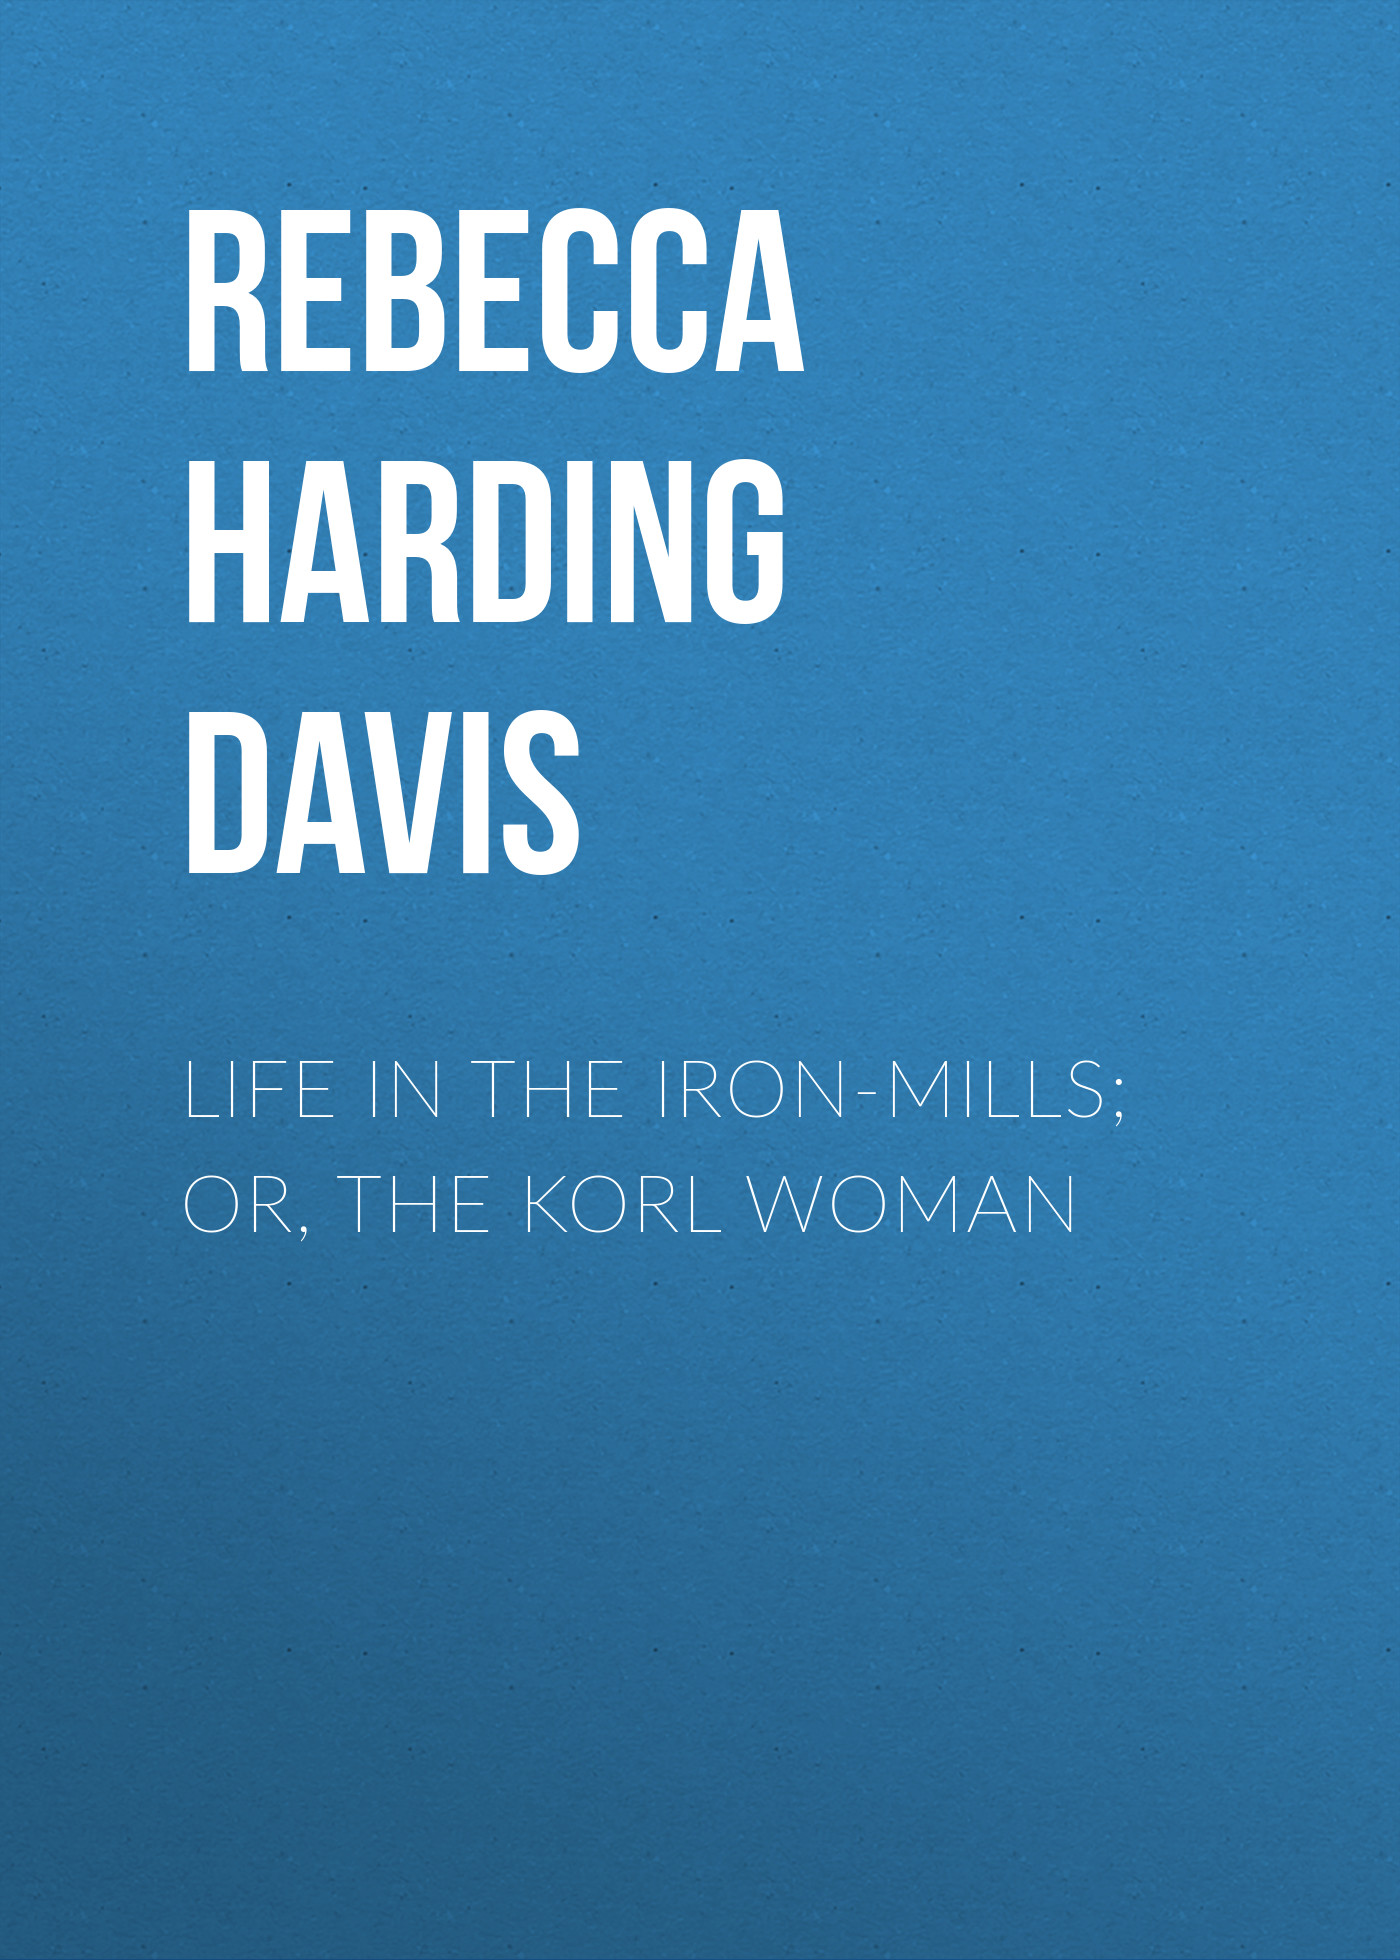 Rebecca Harding Davis Life in the Iron-Mills; Or, The Korl Woman 1pcs 2flutes 12mm micro grain solid carbide end mills milling cutter cnc lathe tool router bits hrc45 50